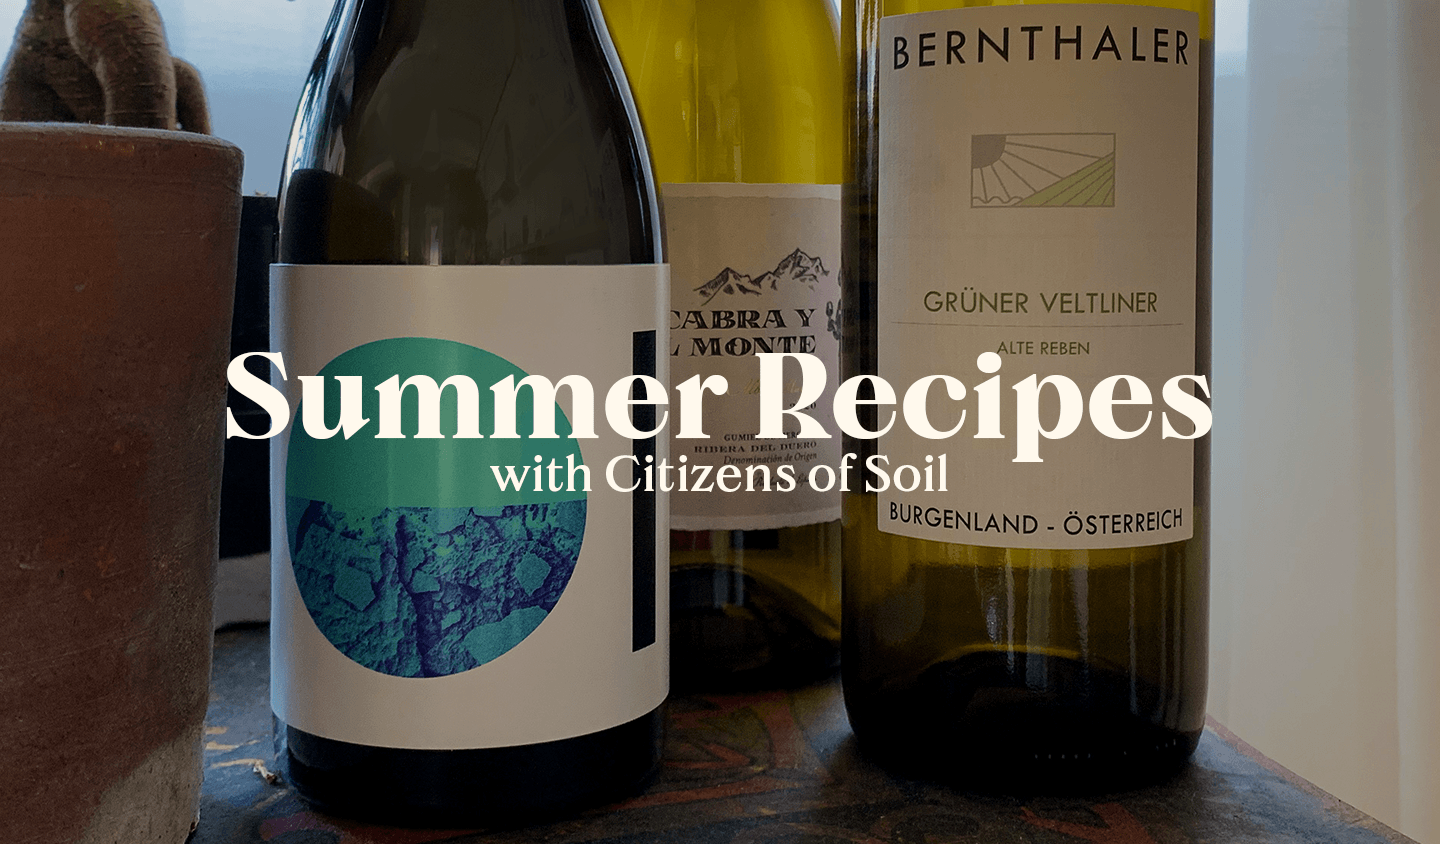 Summer Recipes with Citizens of Soil